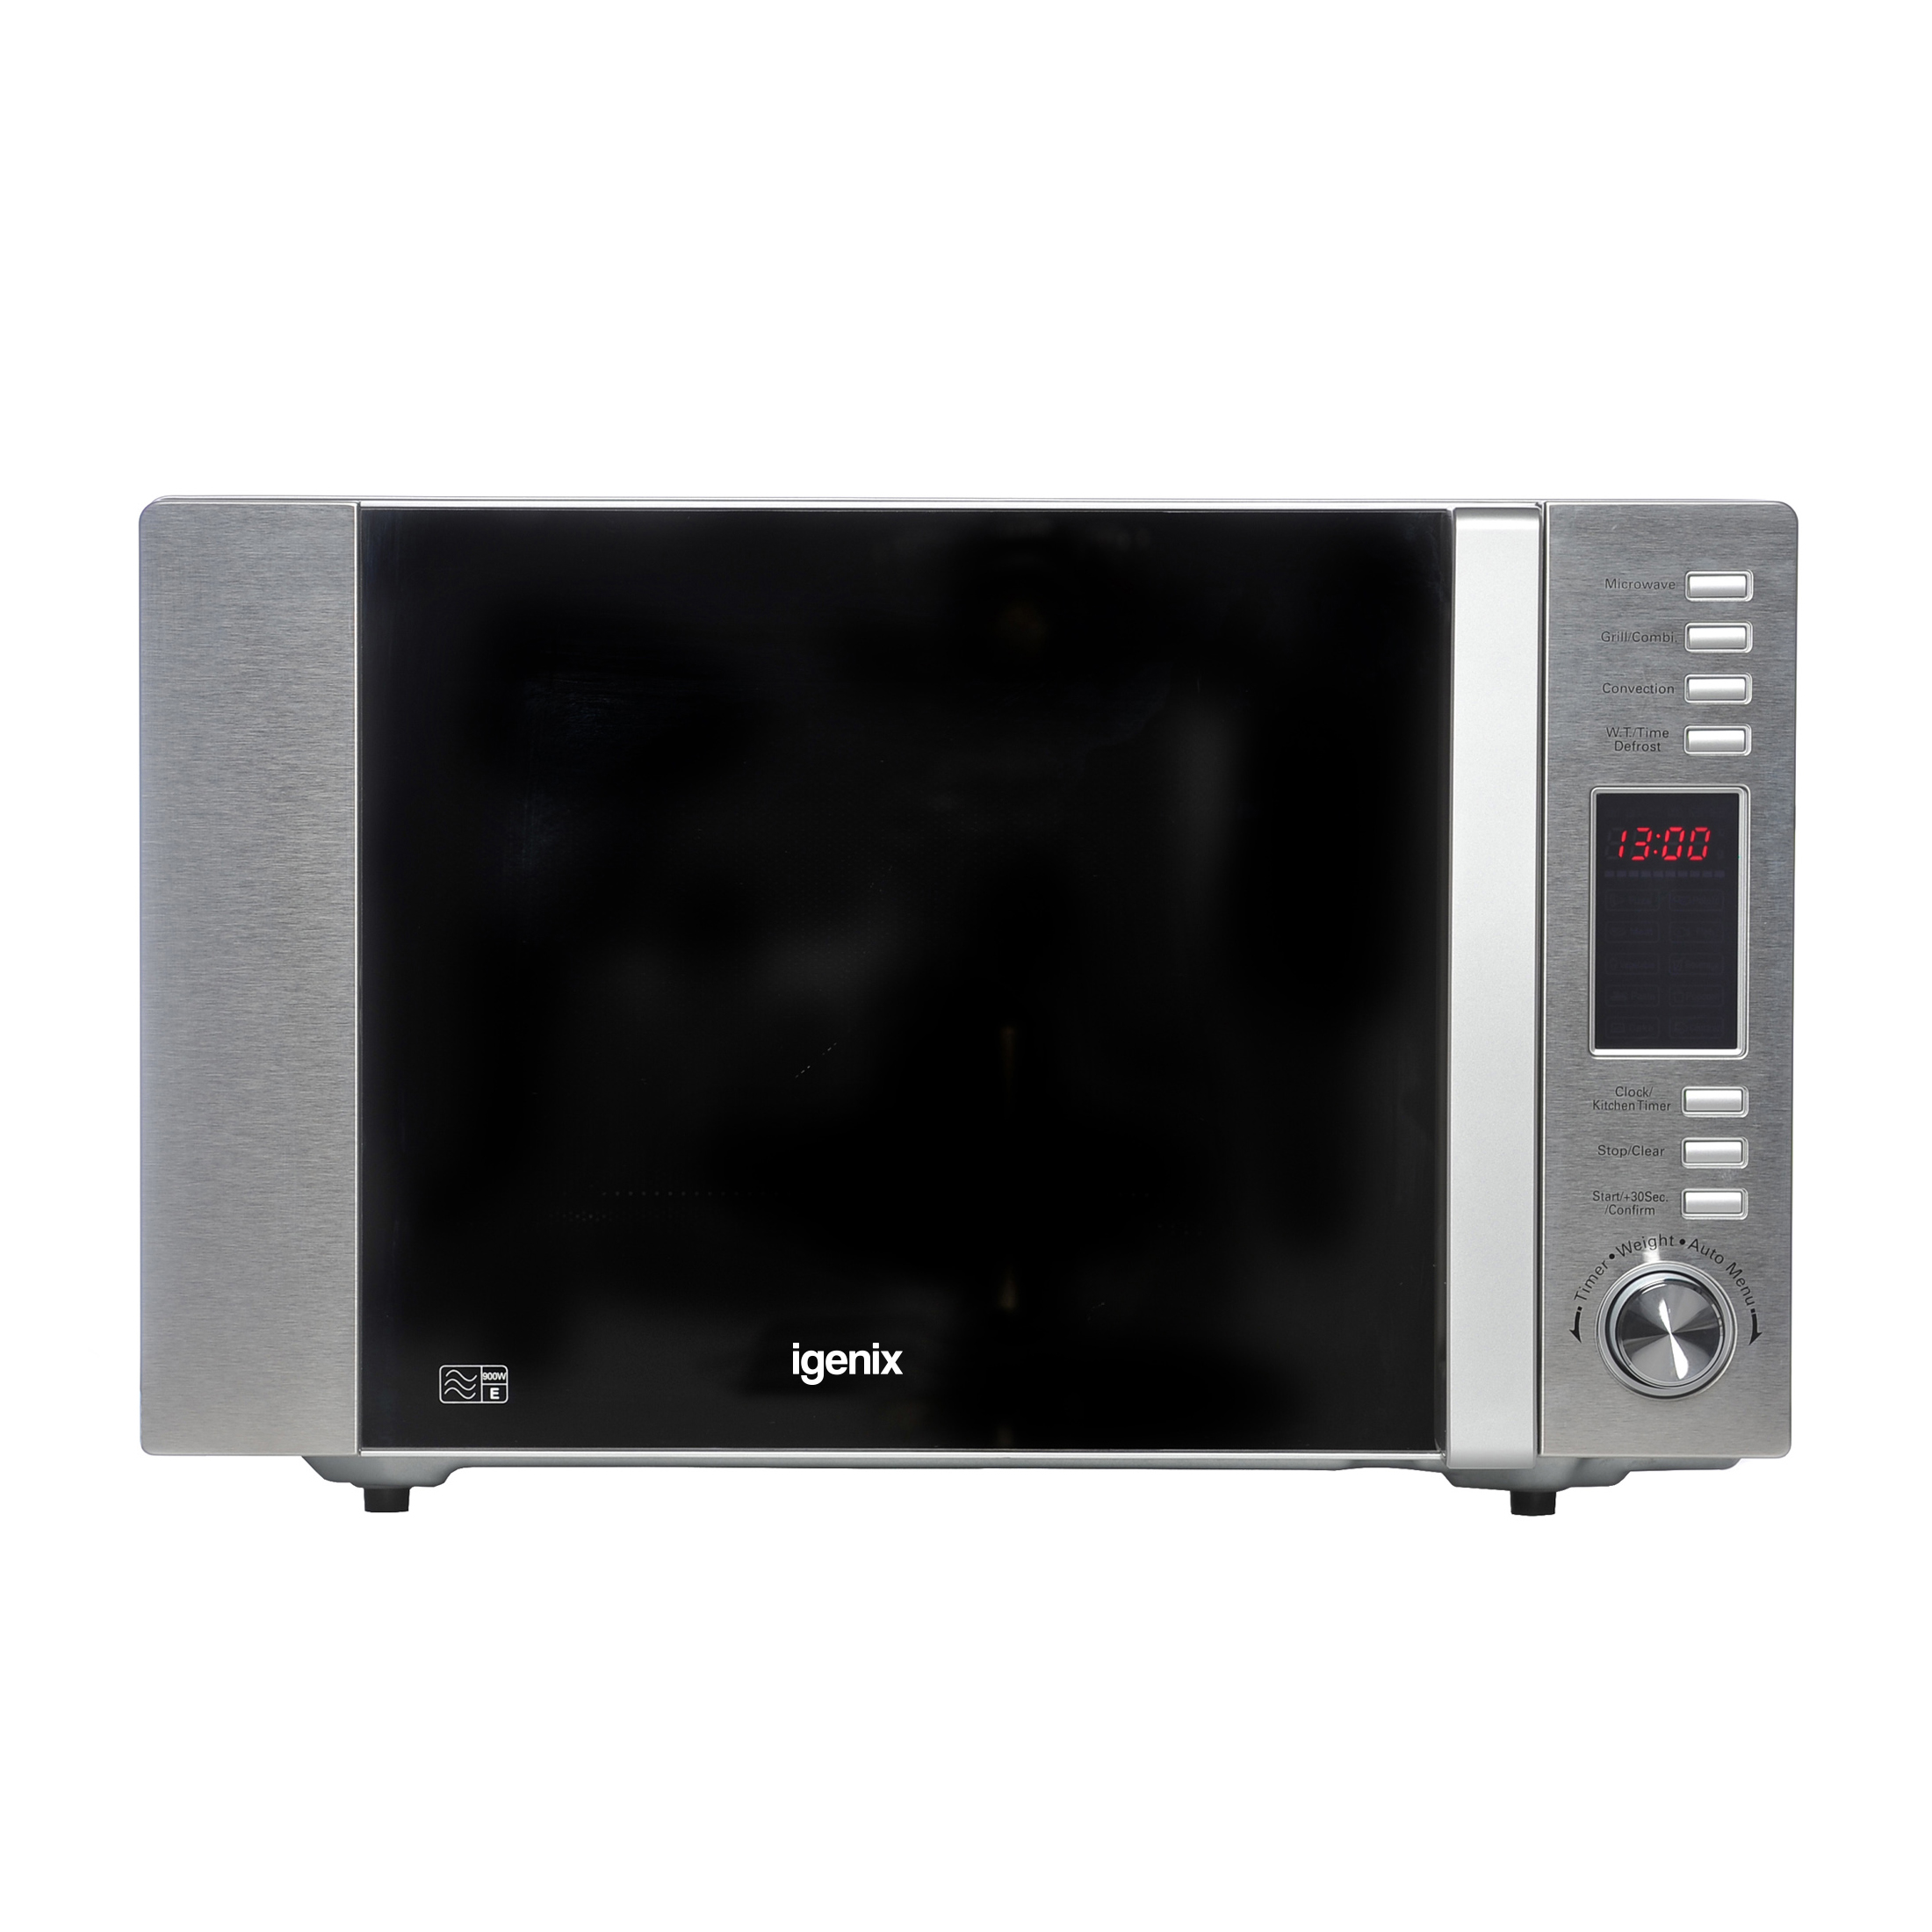 Kitchen Appliances Igenix Microwave Combination Oven and Grill 900W 5 Power Rating 30 Litre Stainless Steel IG3091